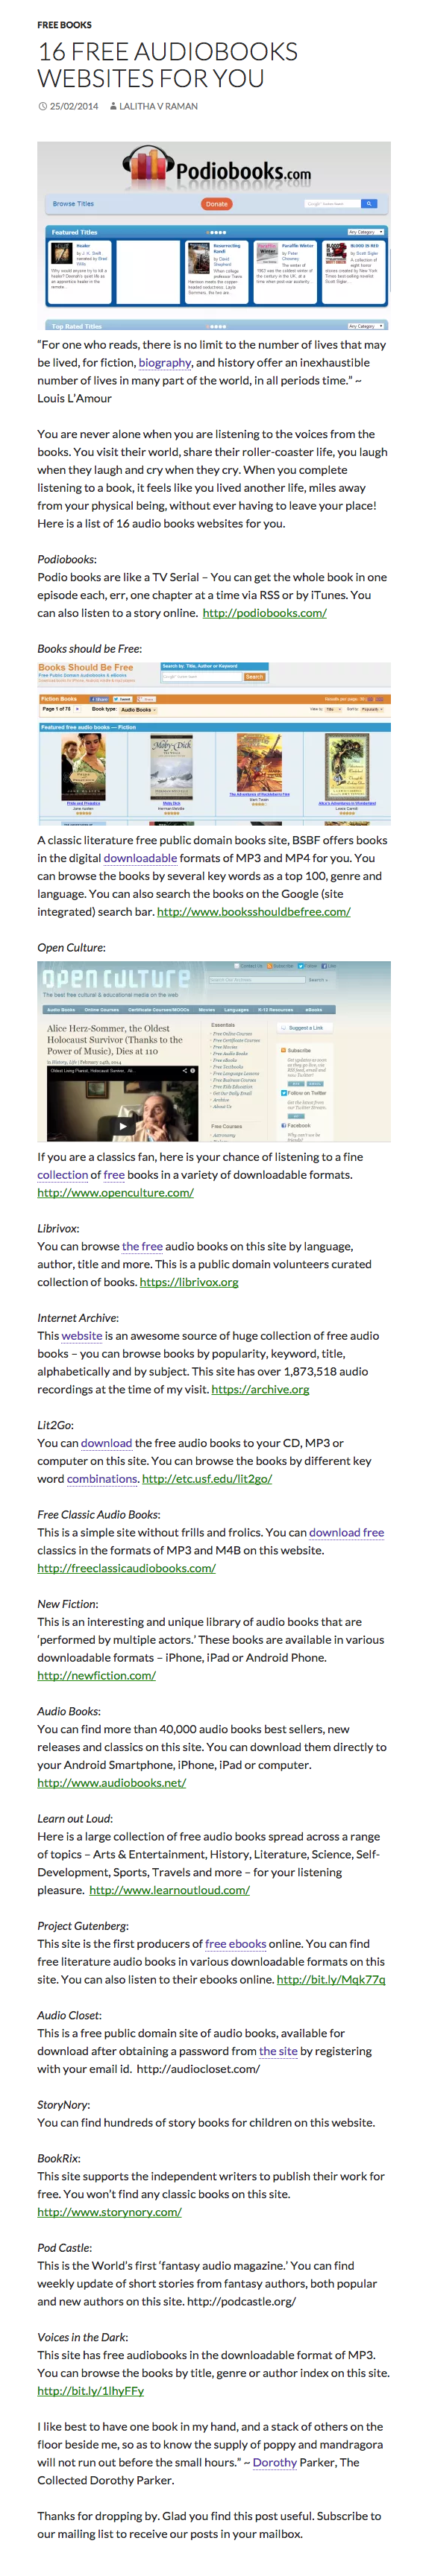 16 Free Audiobooks Websites for You - Simply A Writer